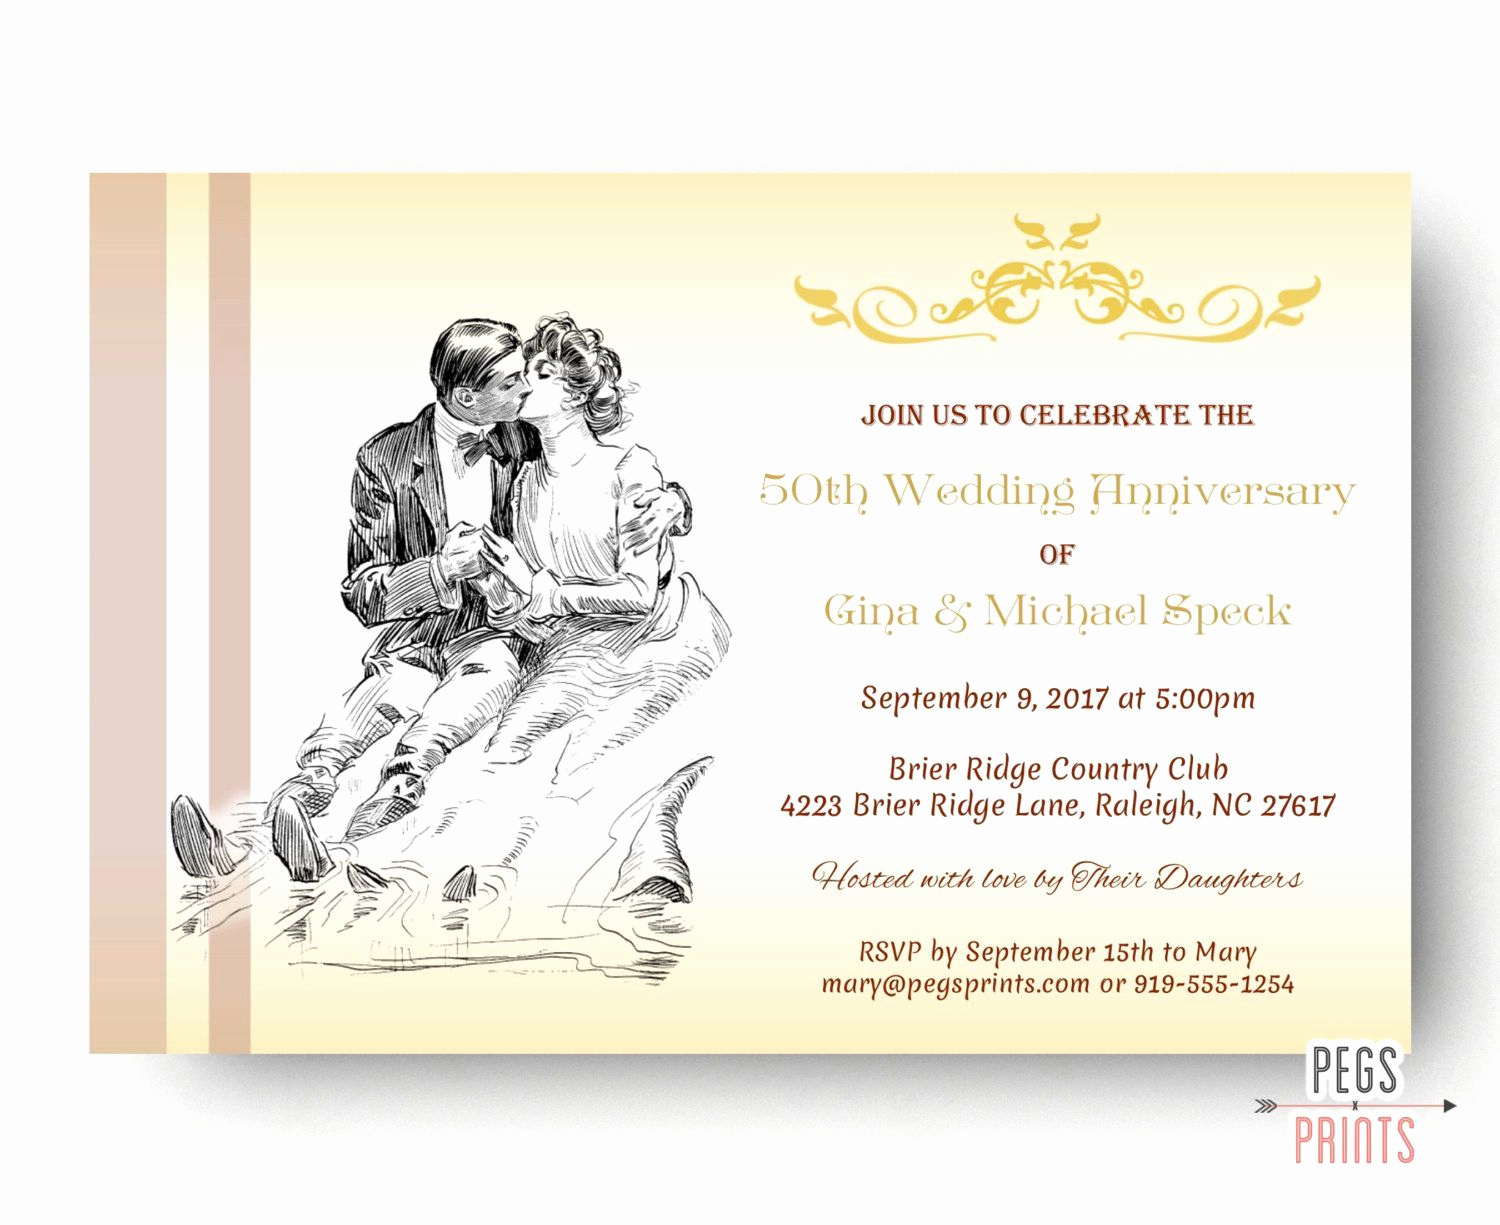 Anniversary Party Invitation Wording New Anniversary Dinner Invitations Anniversary Dinner Party